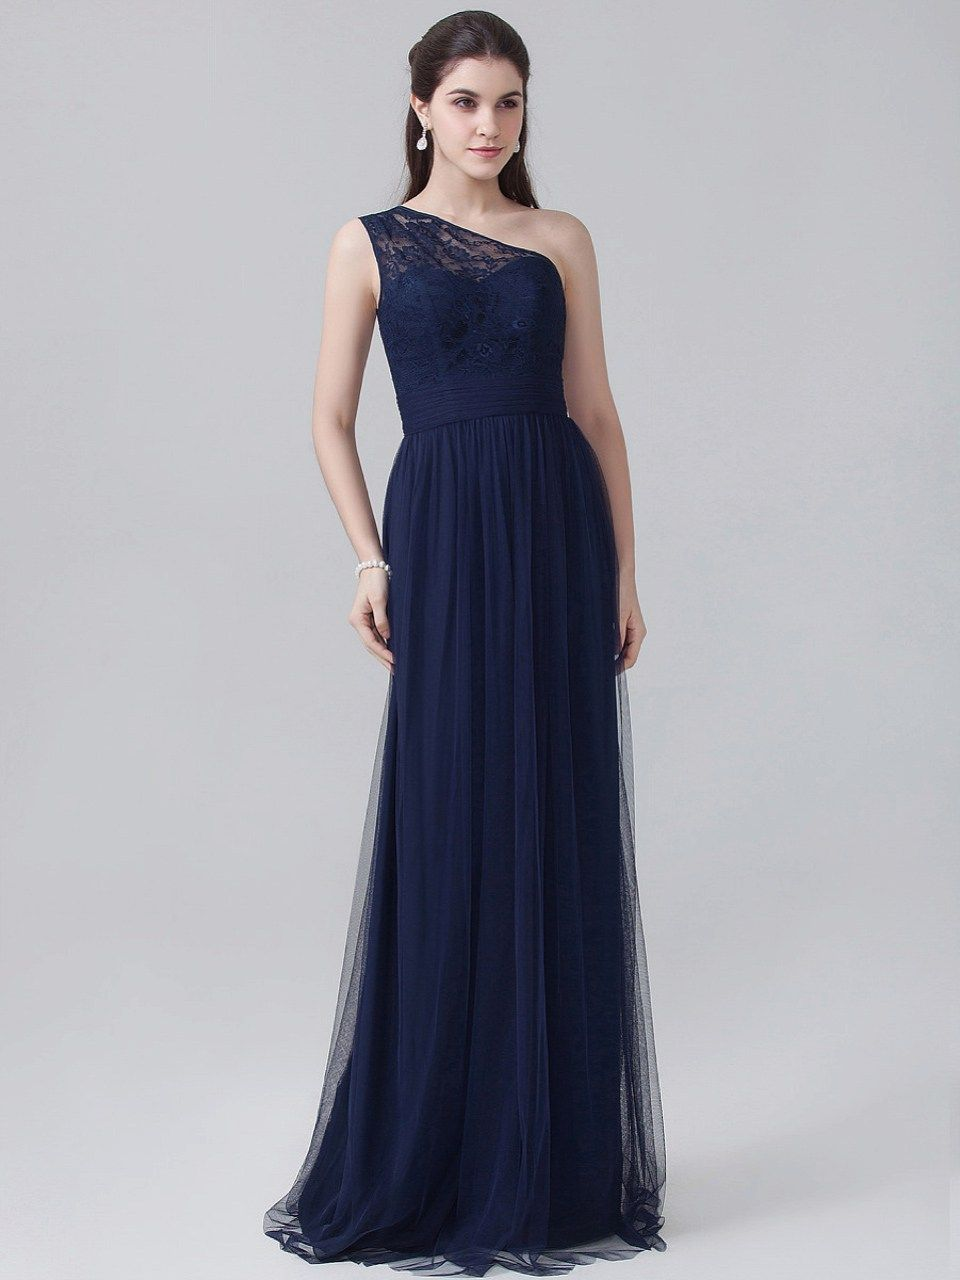 It\'s May Sale Time! Up To 30% Off Bridesmaid Dresses From For Her ...